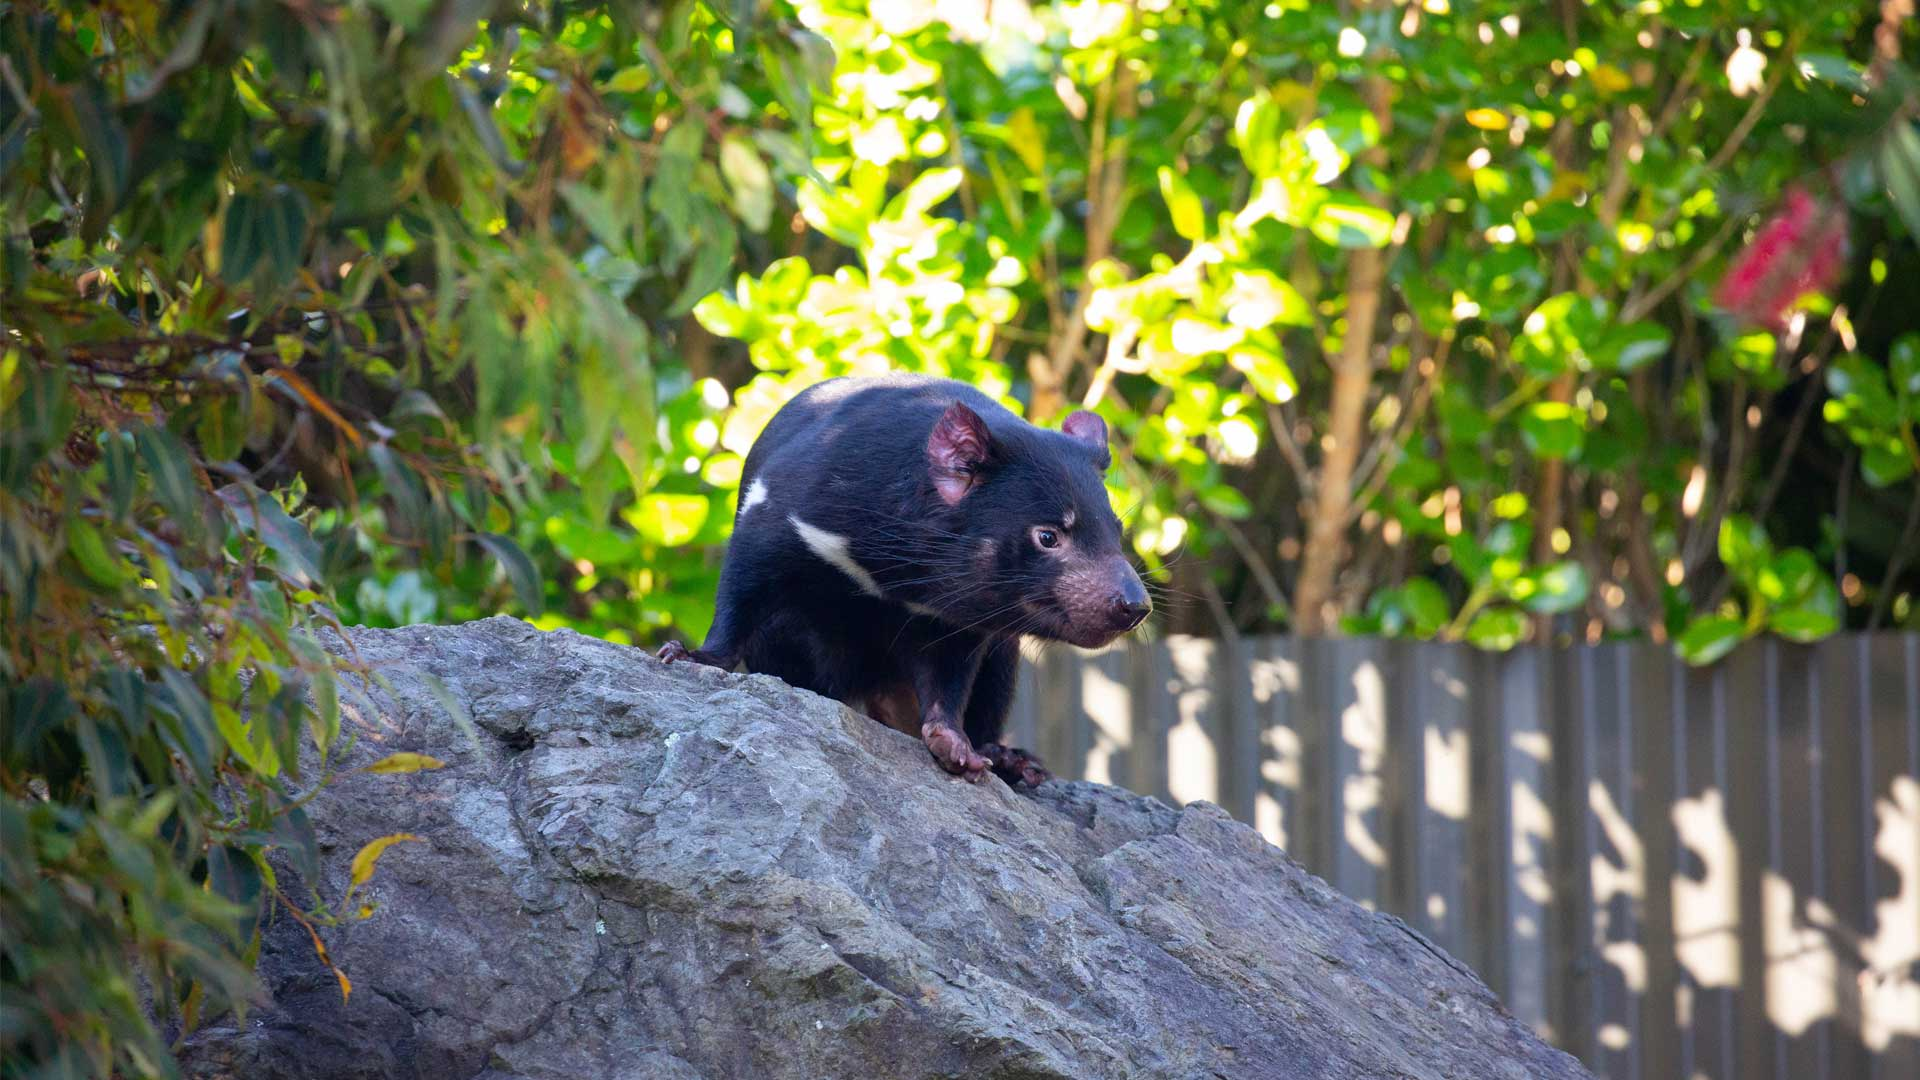 https://rfacdn.nz/zoo/assets/media/new-tassie-devils-gallery-4.jpg